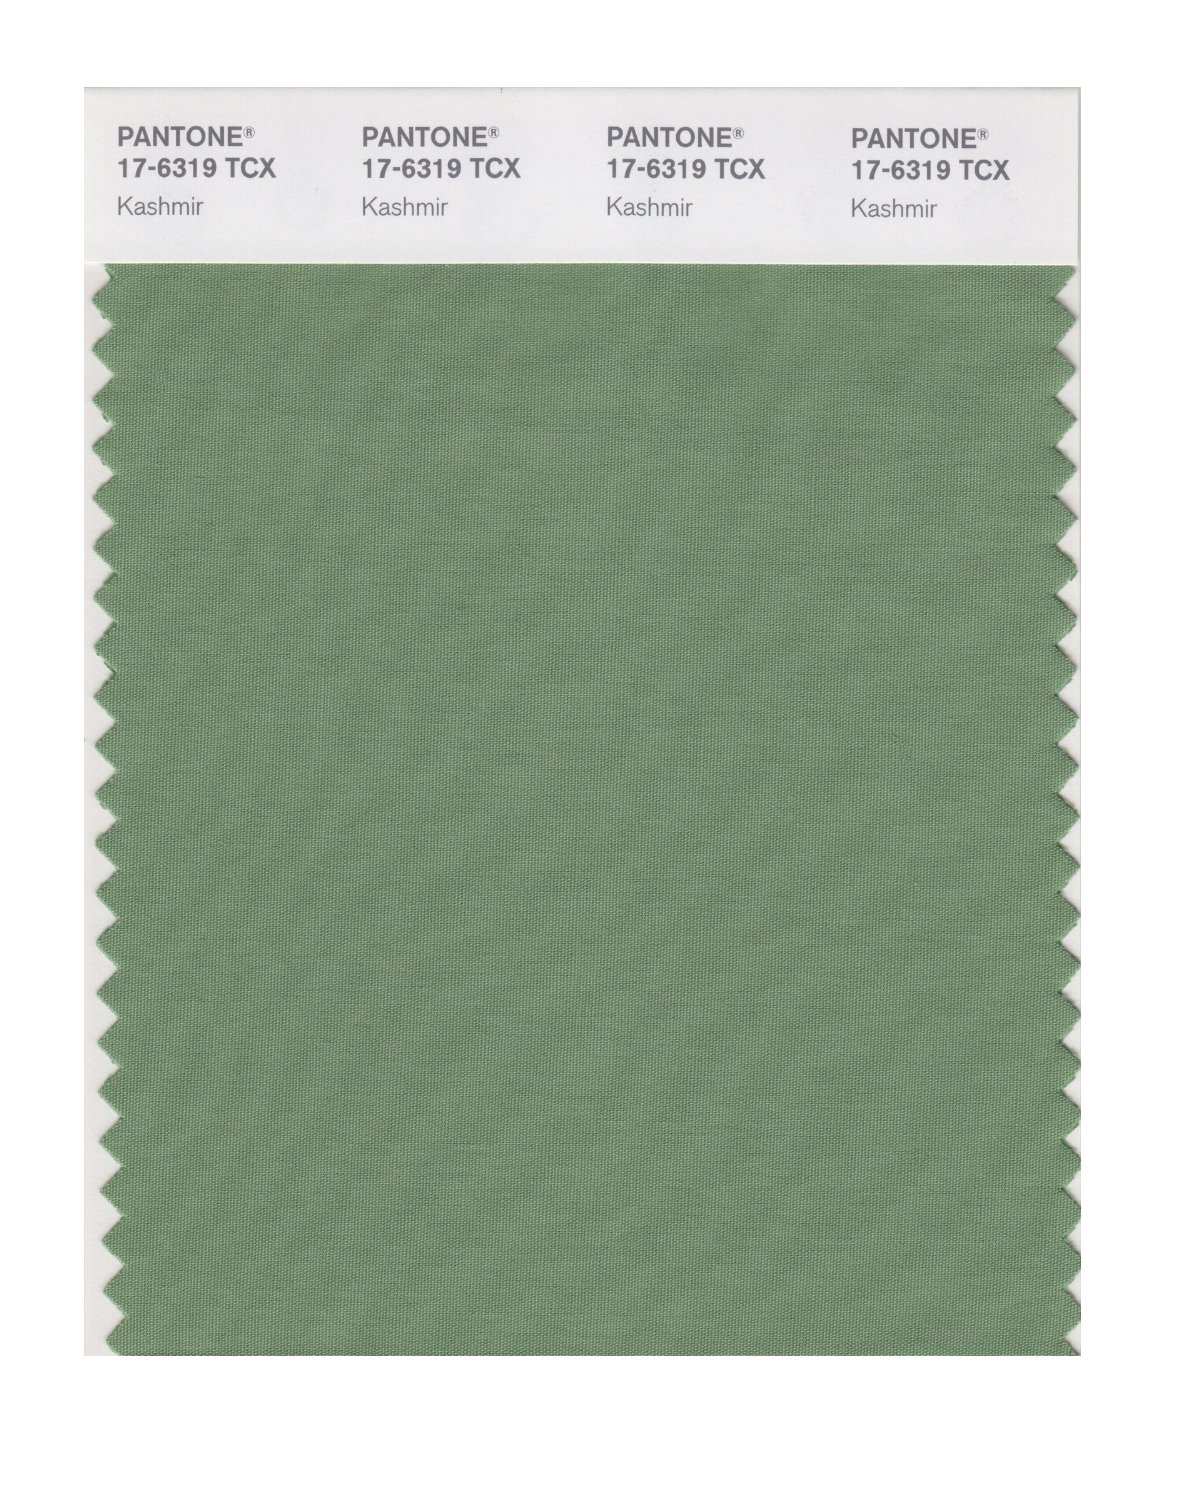 Pantone Smart Swatch 17-6319 Kashmir